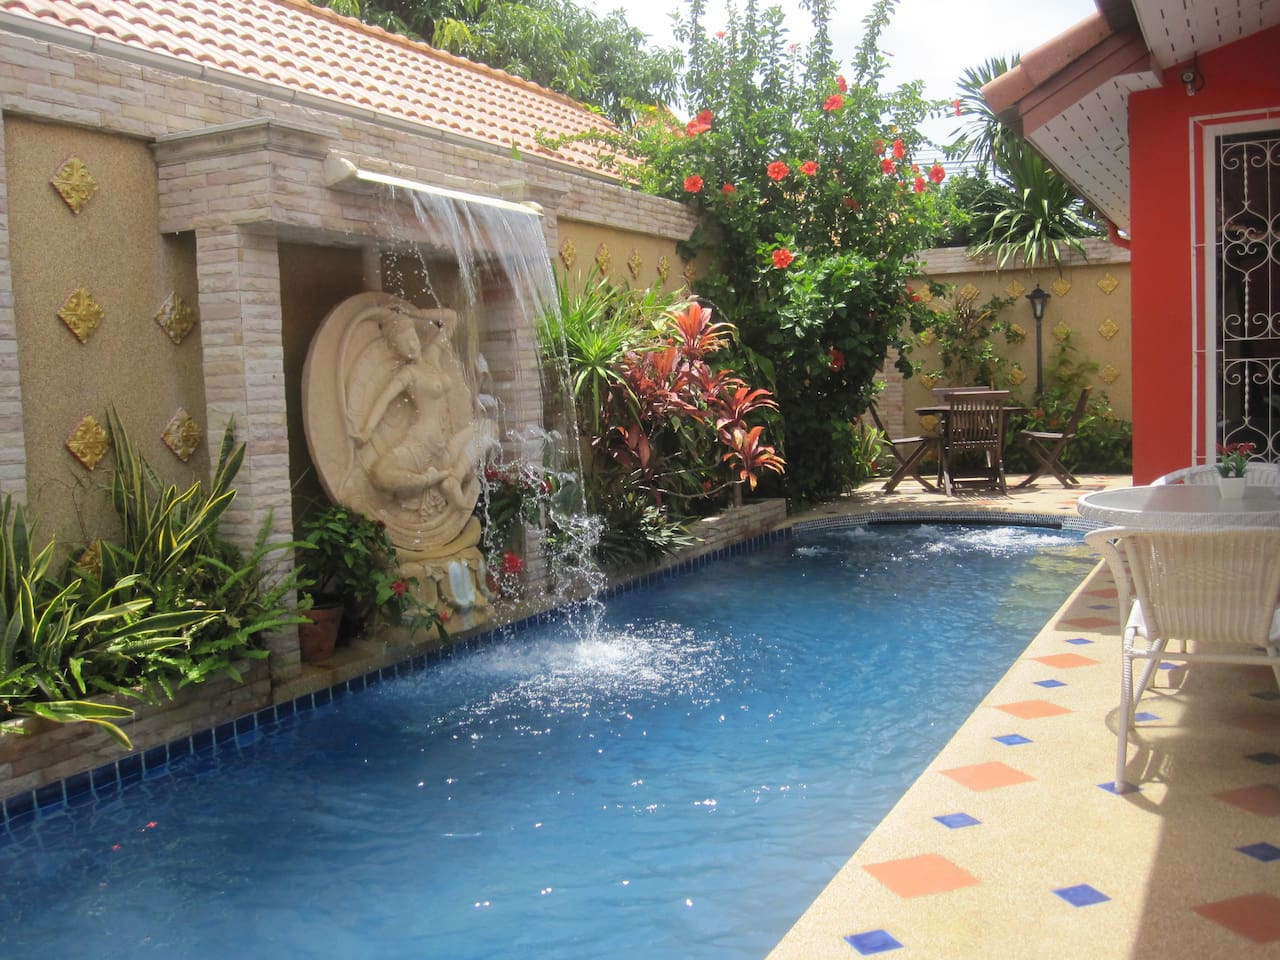 Pool area. Waterfall feature.